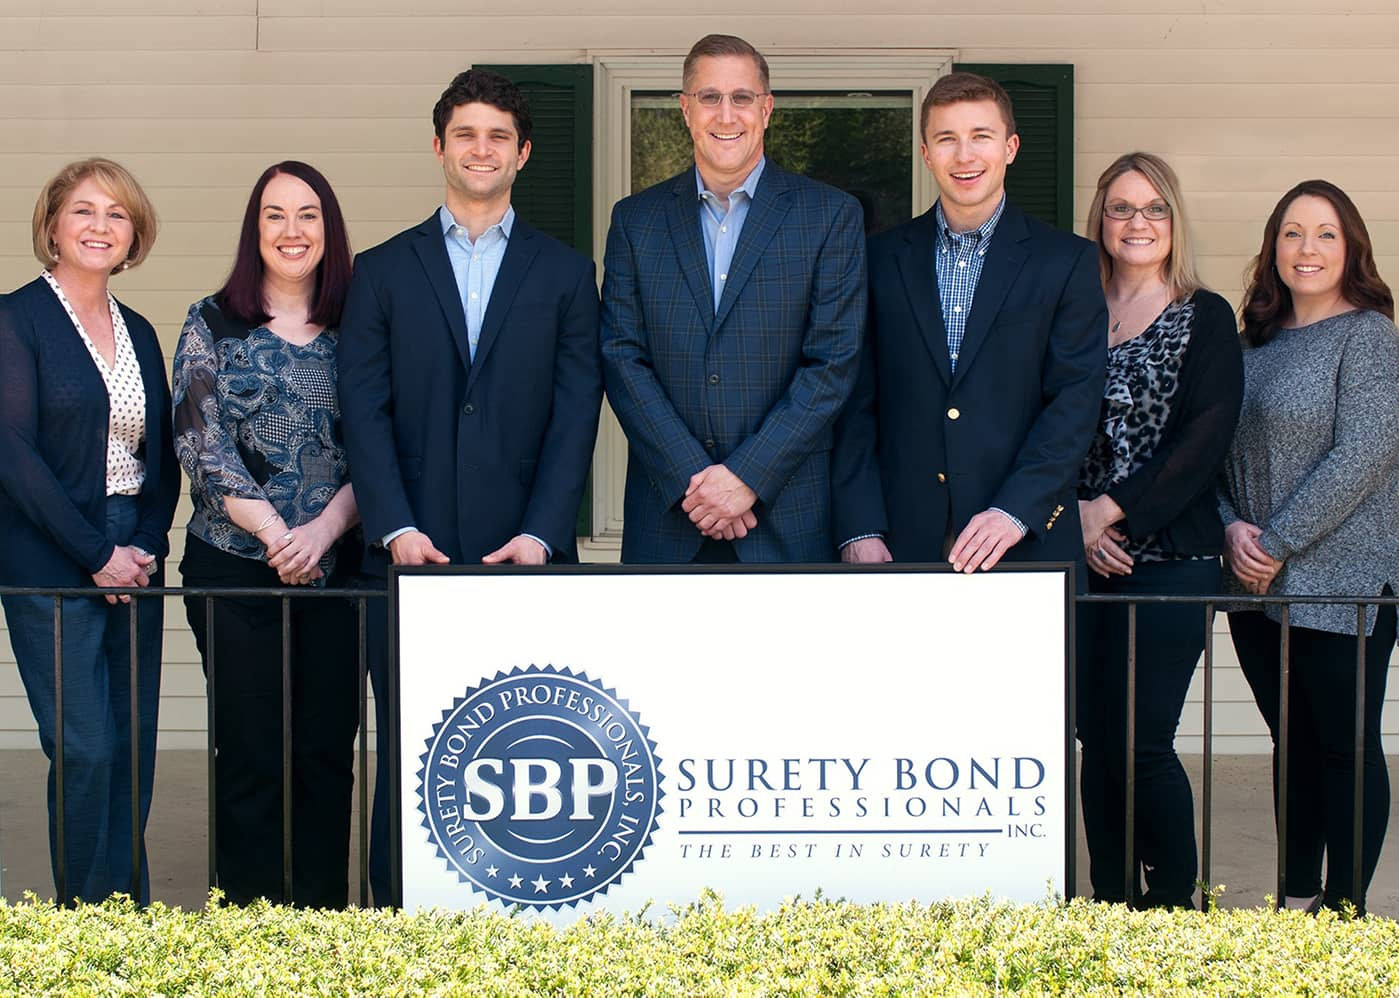 The Surety Bond Professionals Team